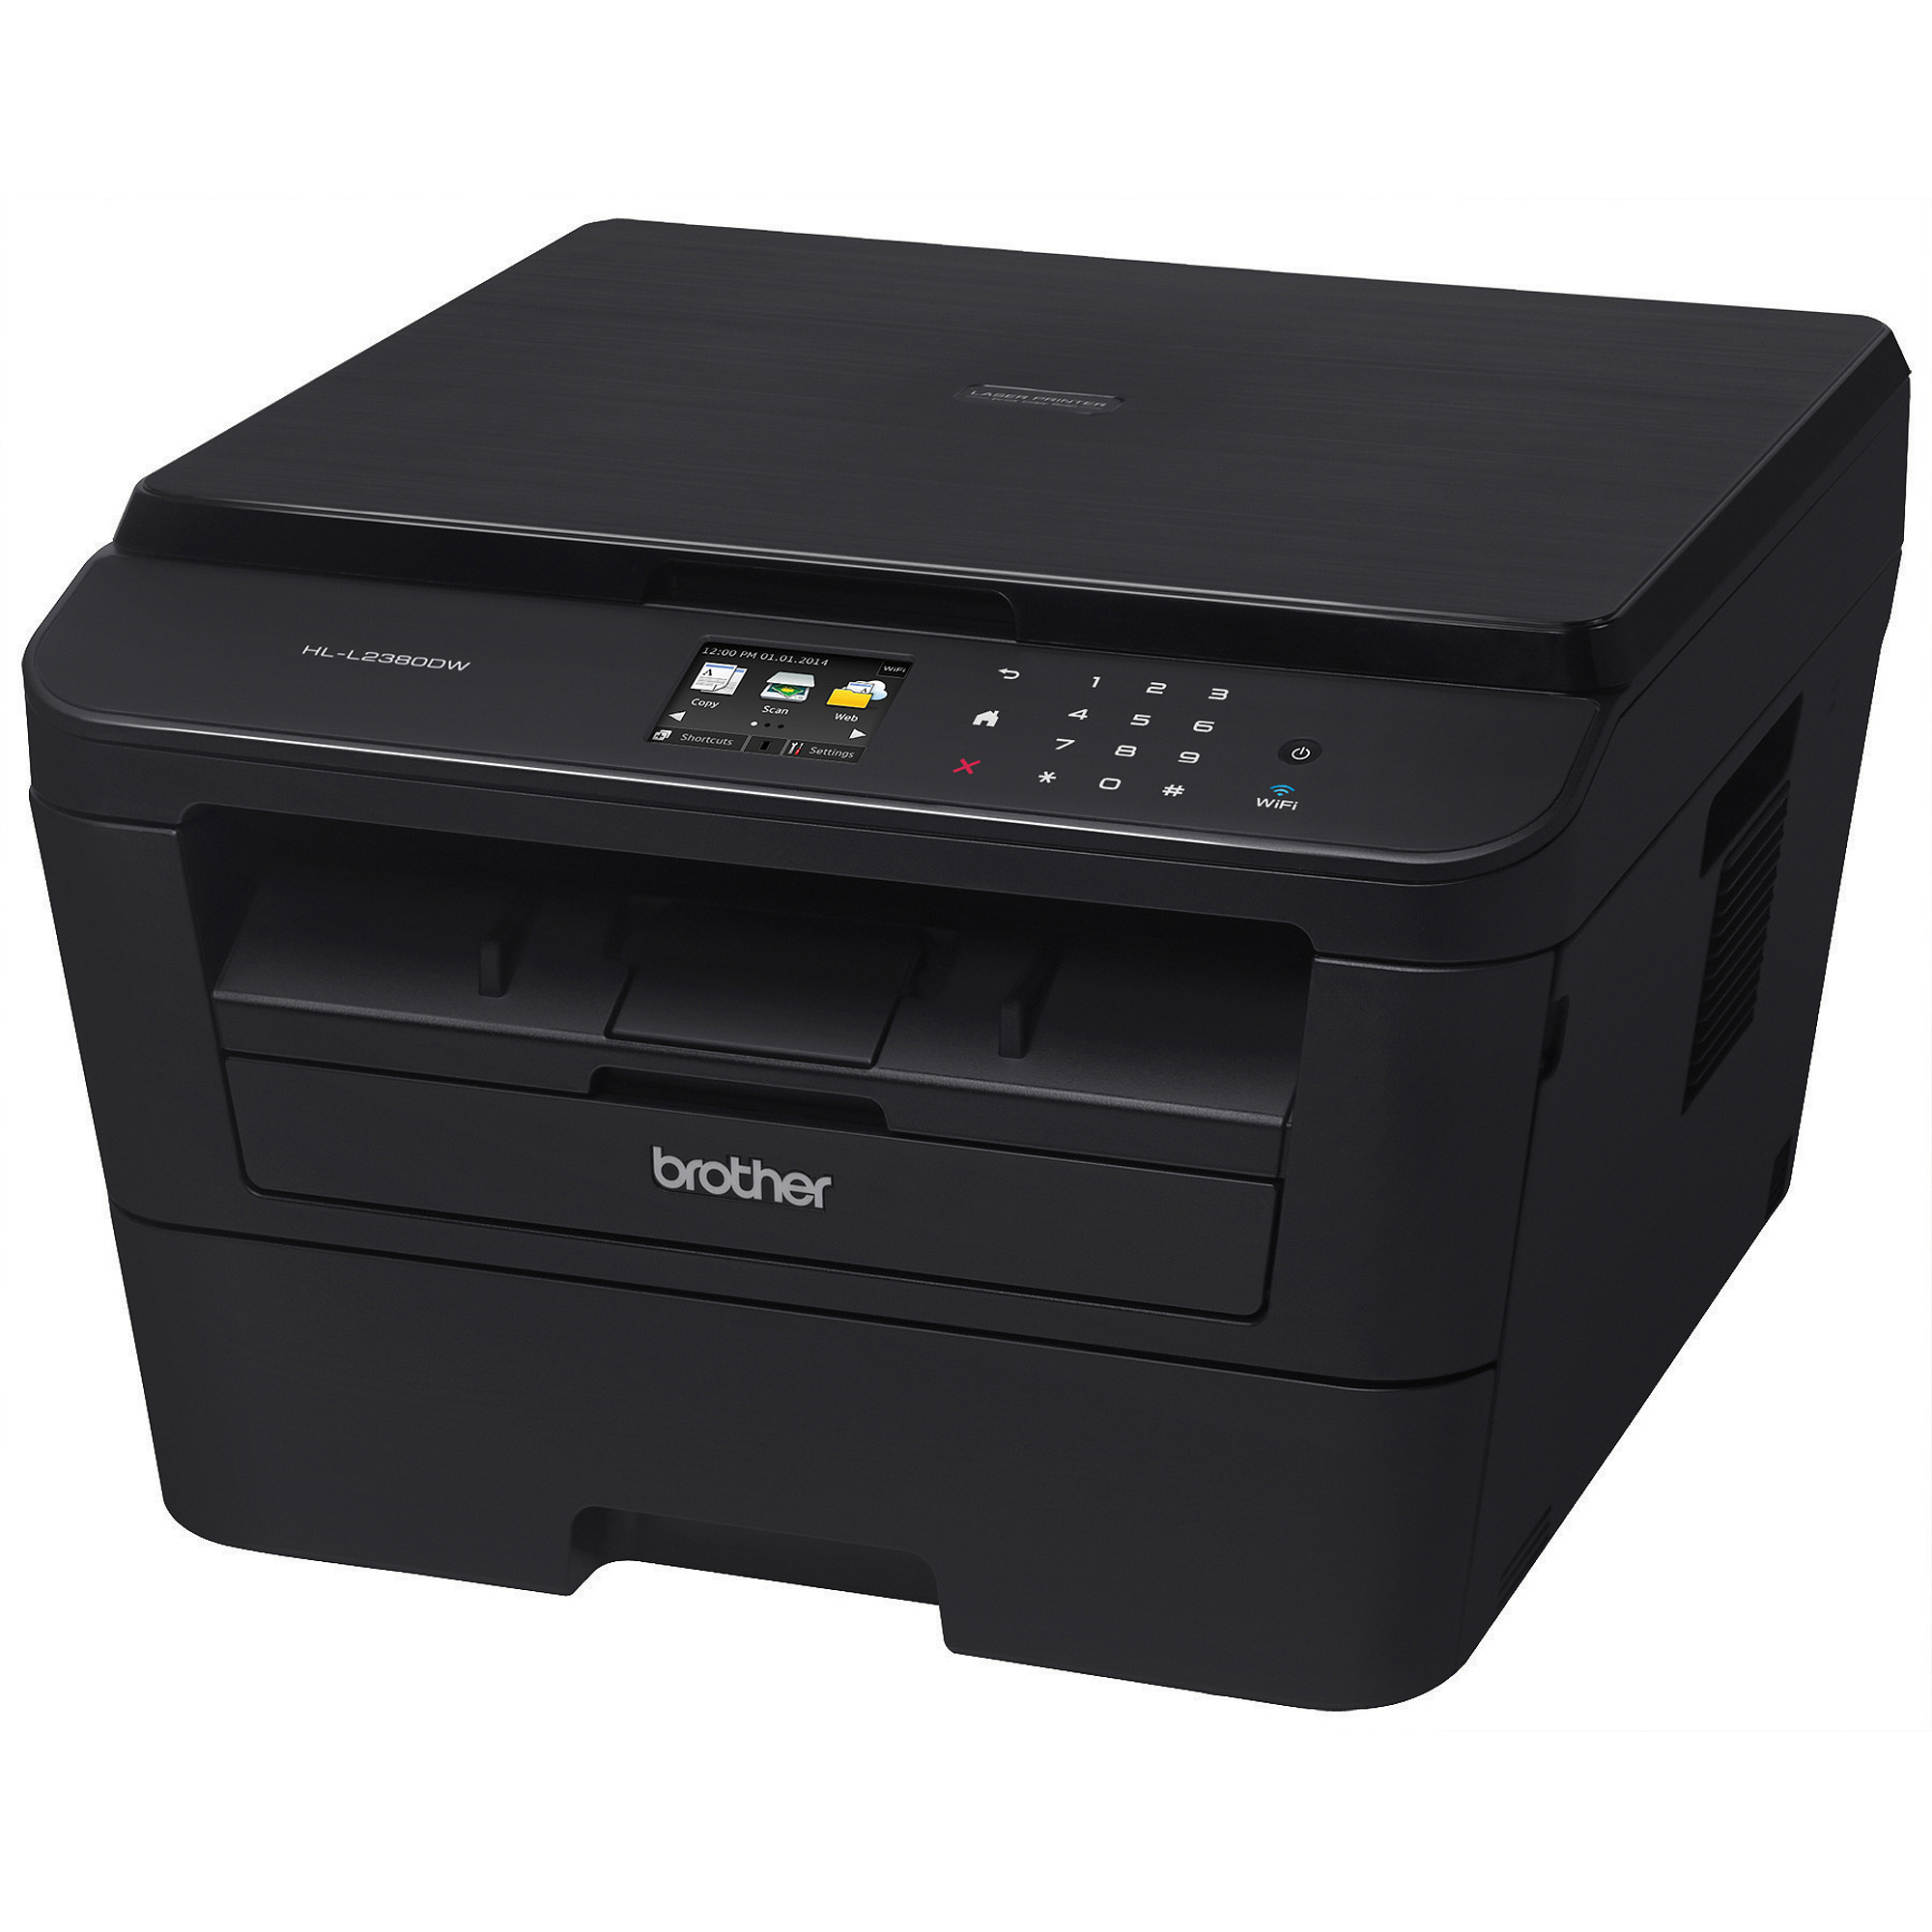 Brother HL-L2380DW Laser Multi-Function Printer/Copier/Scanner